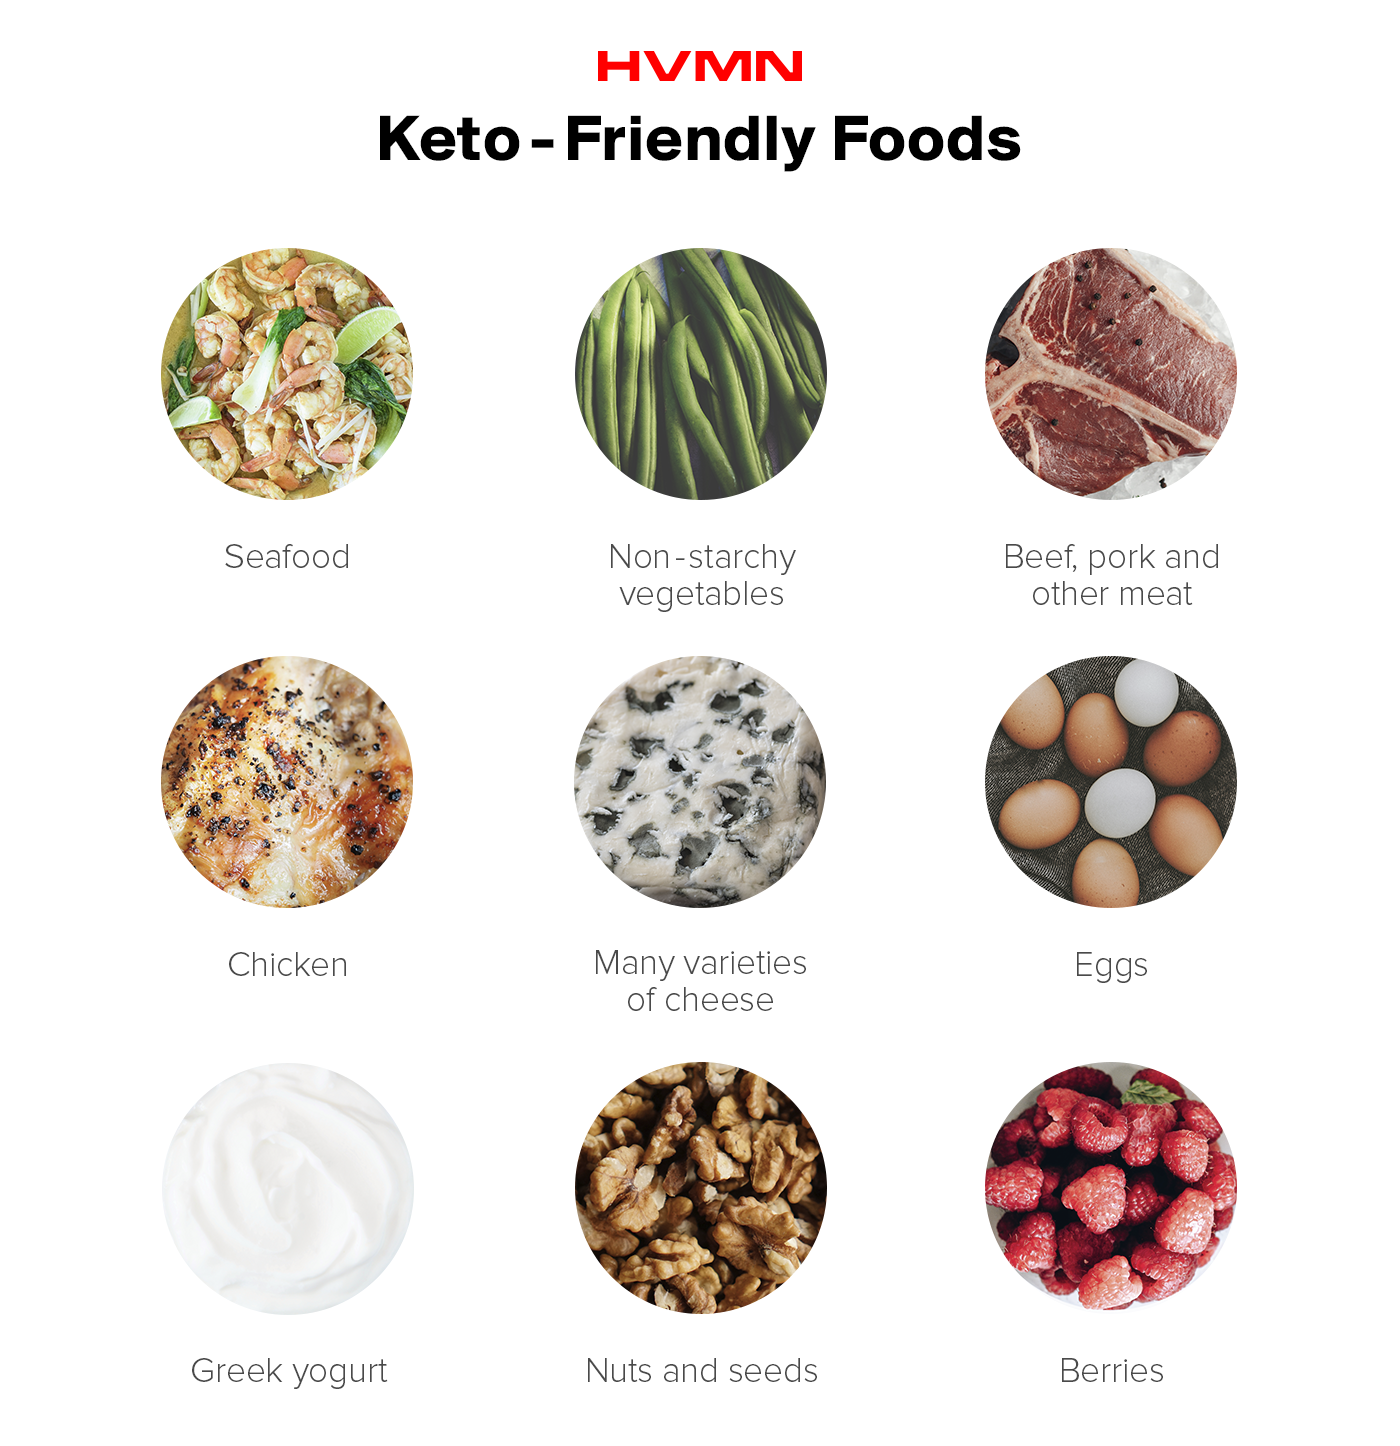 Images of keto-friendly foods, including meats and fish, eggs, nuts and cheese